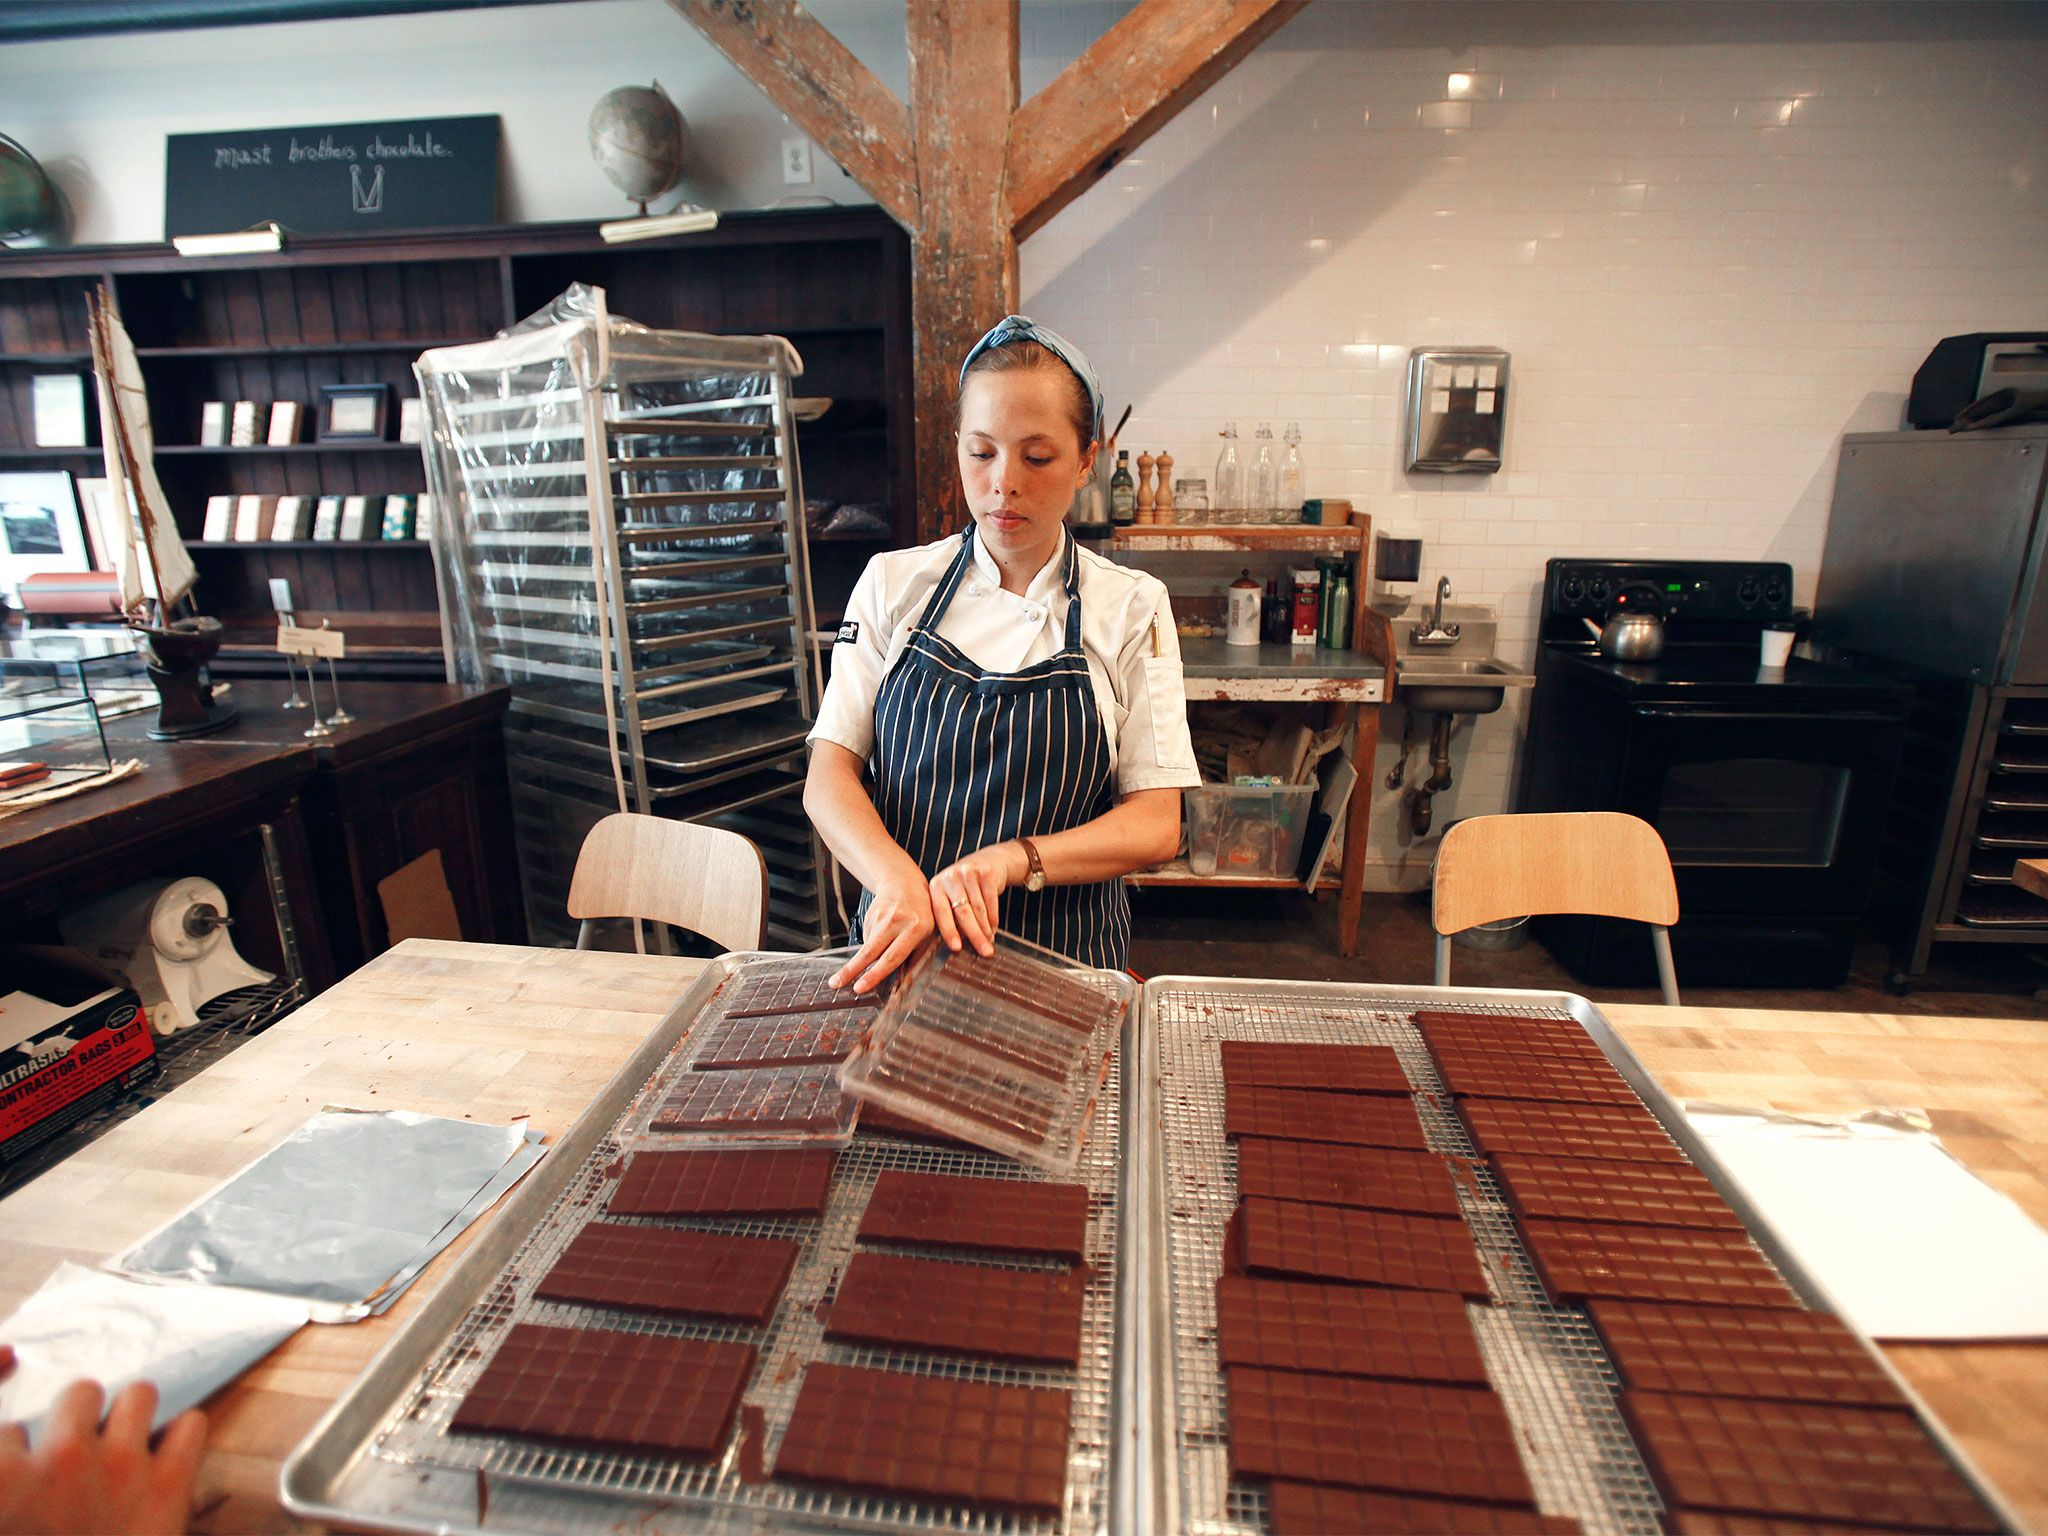 10 Chocolate Shops Worth Traveling For | Mast brothers chocolate ...